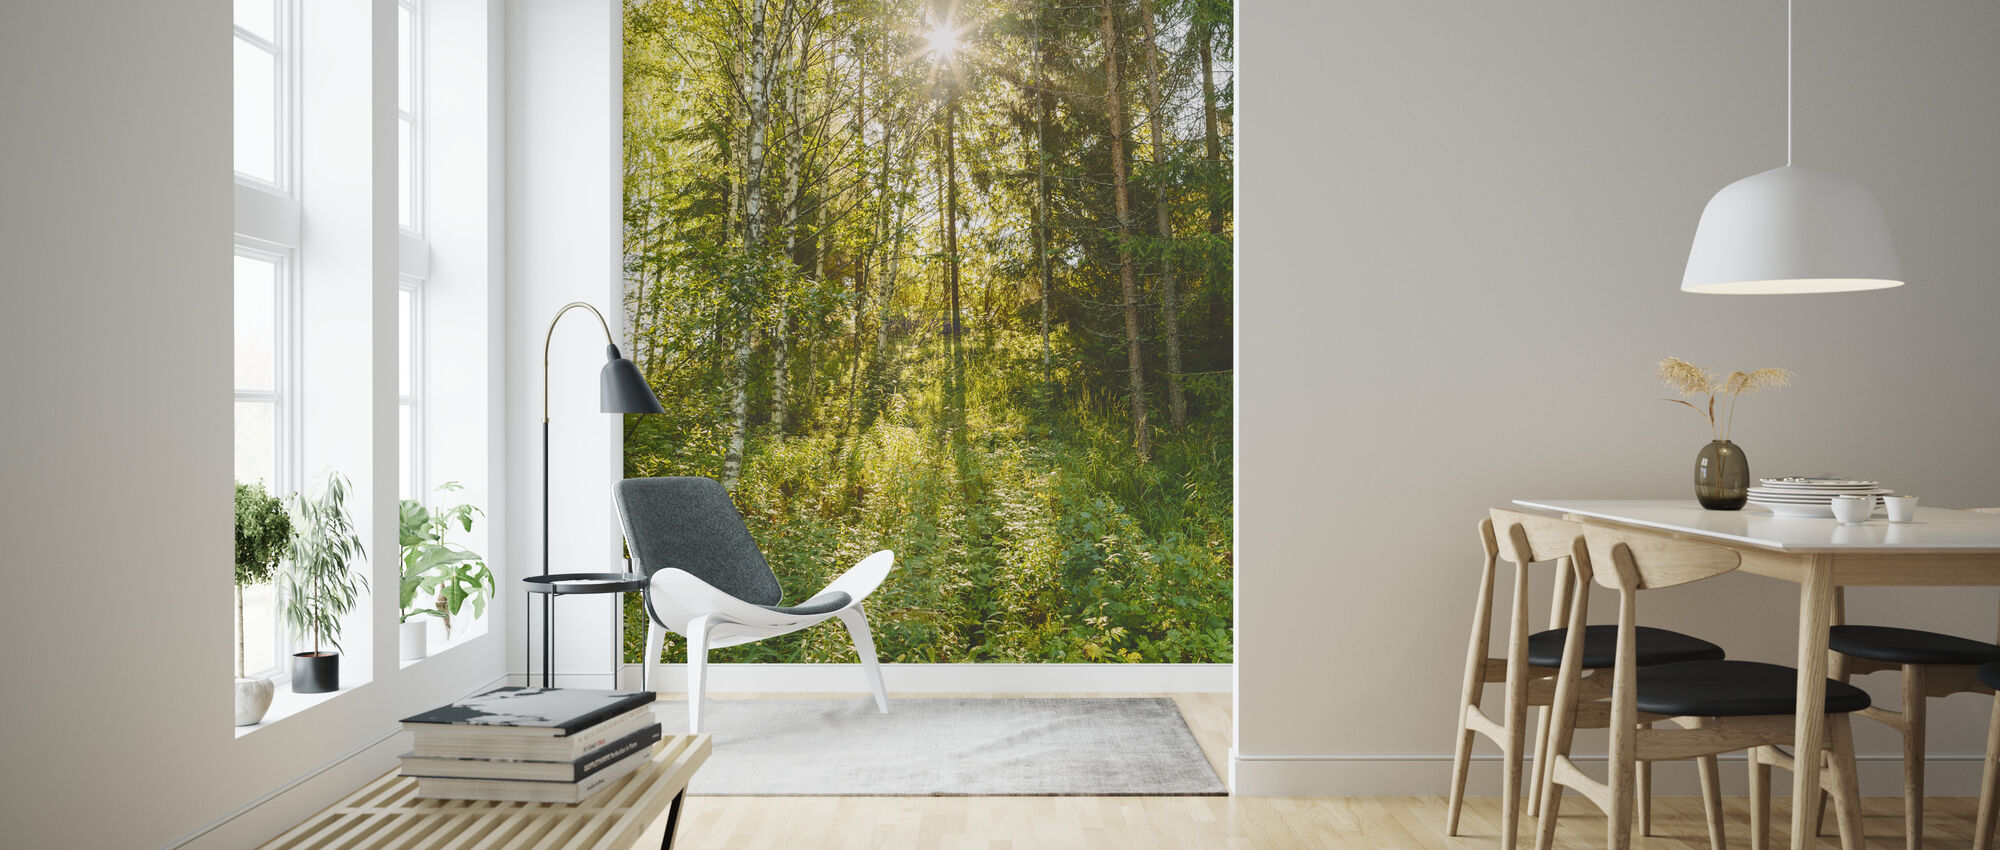 Sunlit Deciduous Trees, Finland - Wallpaper - Living Room